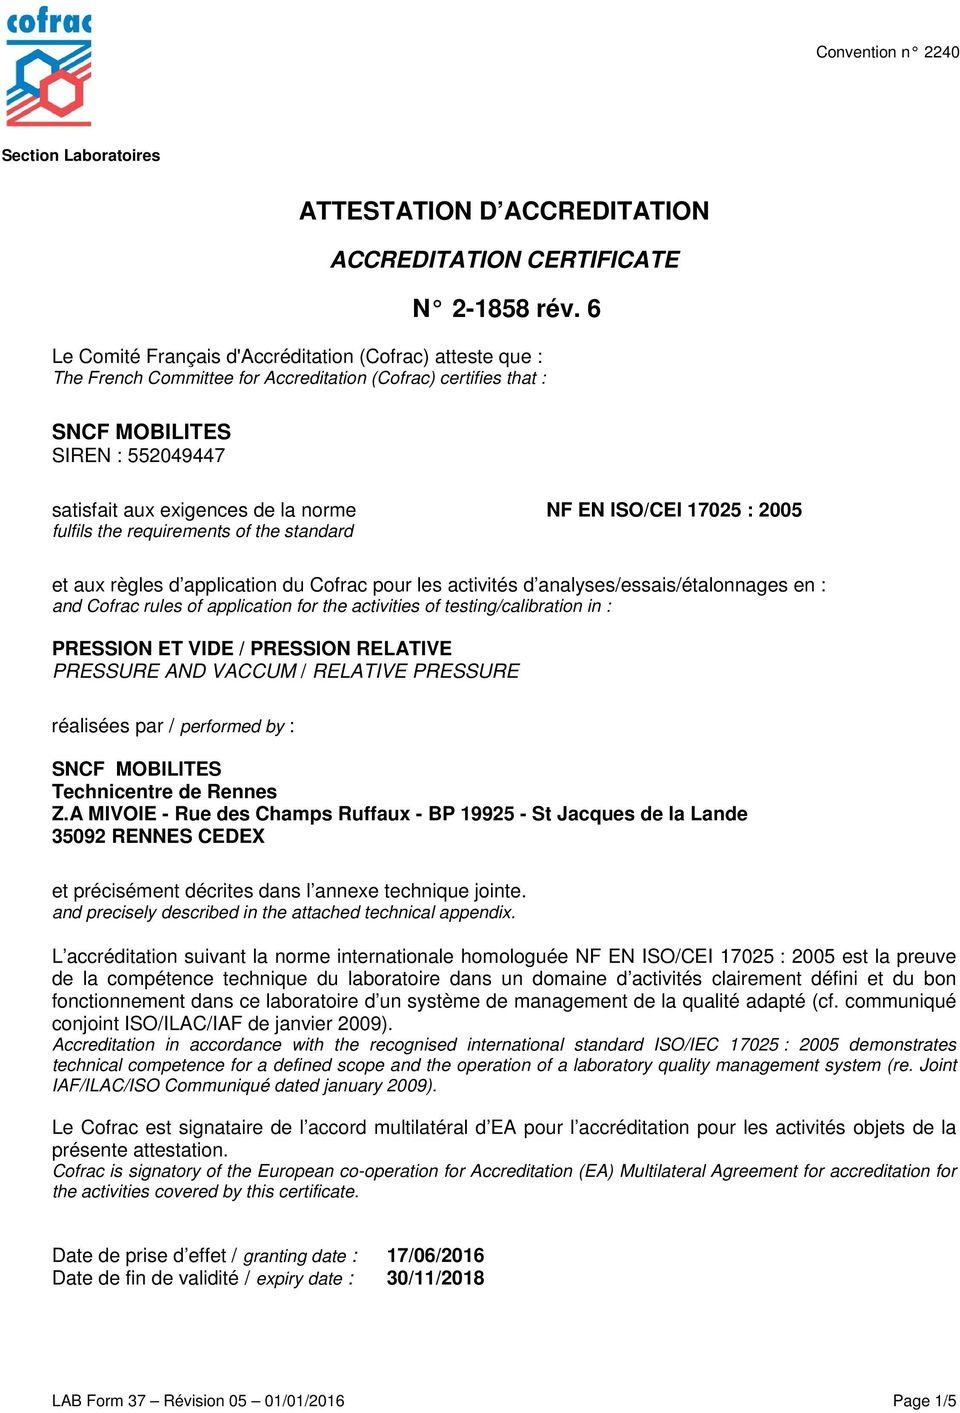 : 2005 fulfils the requirements of the standard et aux règles d application du Cofrac pour les activités d analyses/essais/étalonnages en : and Cofrac rules of application for the activities of